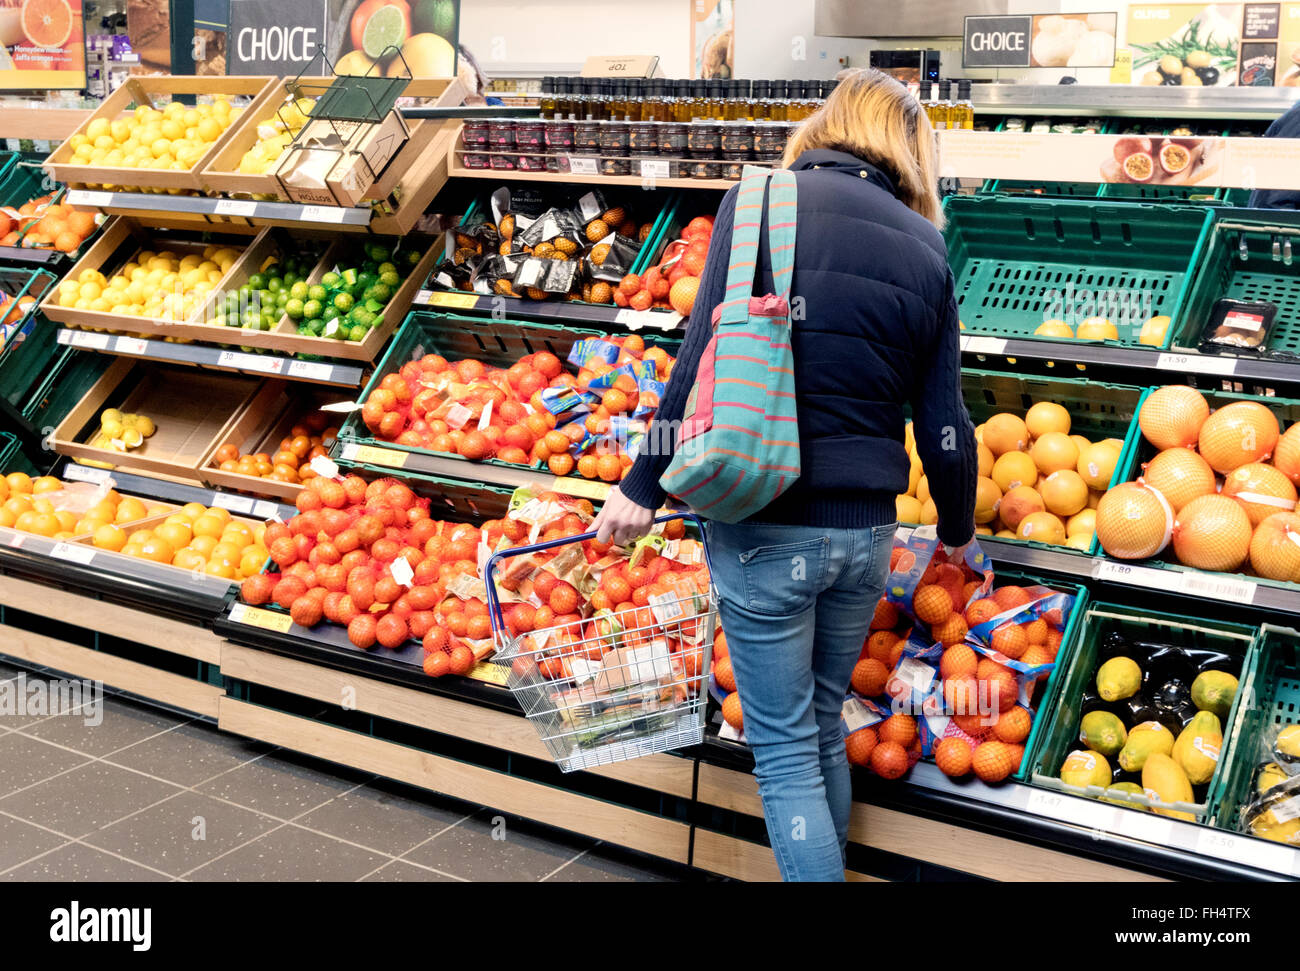 A woman shopping for fruit in Tesco supermarket aisle, Suffolk UK - Stock Image